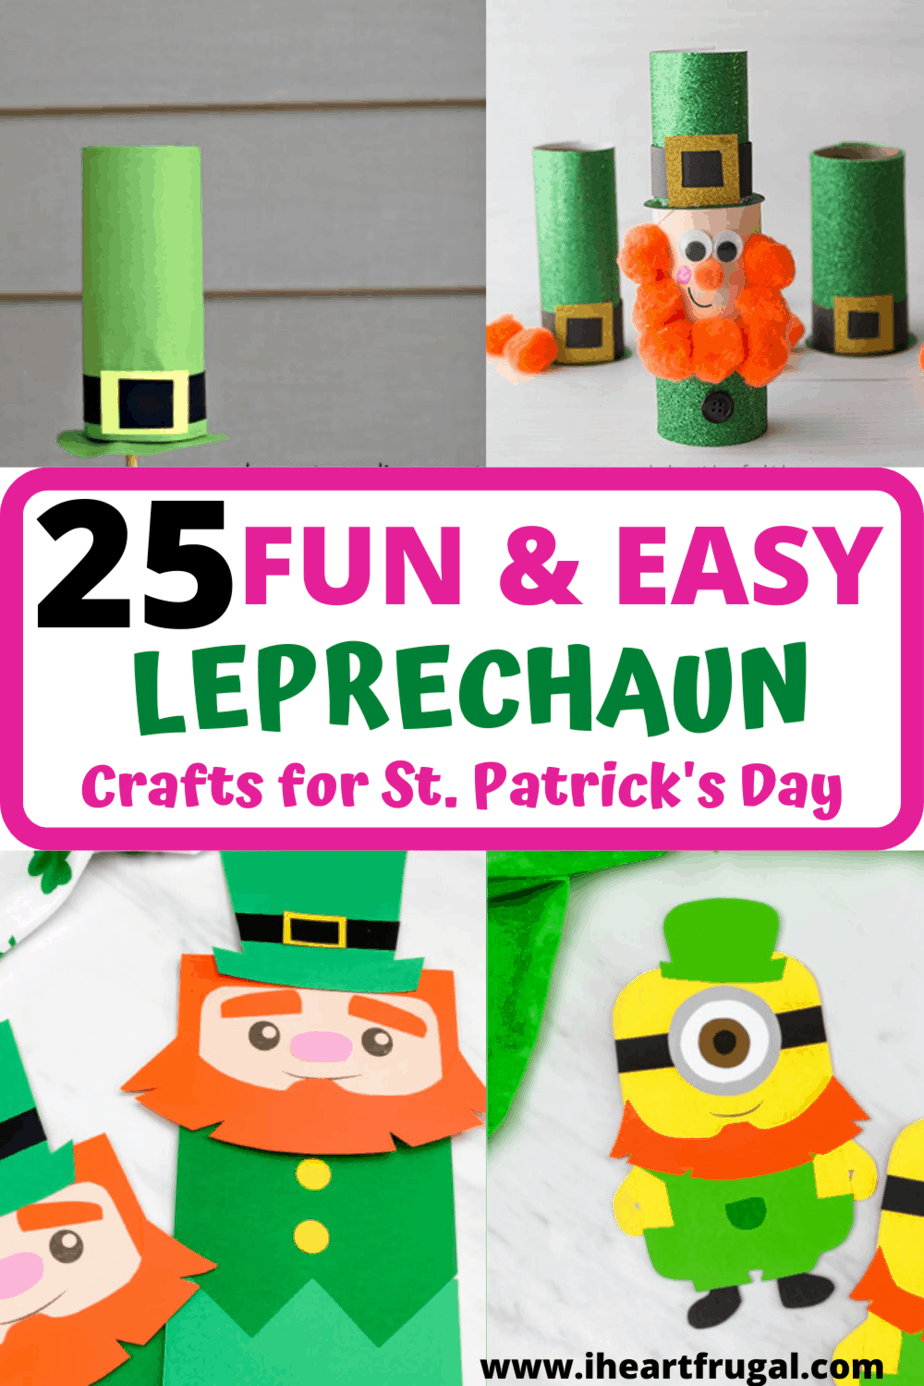 Are you looking for St. Patrick's Day crafts for kids? These St. Patrick's Day ideas will help your little one have fun this year. St. Patrick's Day crafts for preschool or elementary kids will brighten up your fun day! #stpatricksday #kidscrafts #preschoolcrafts